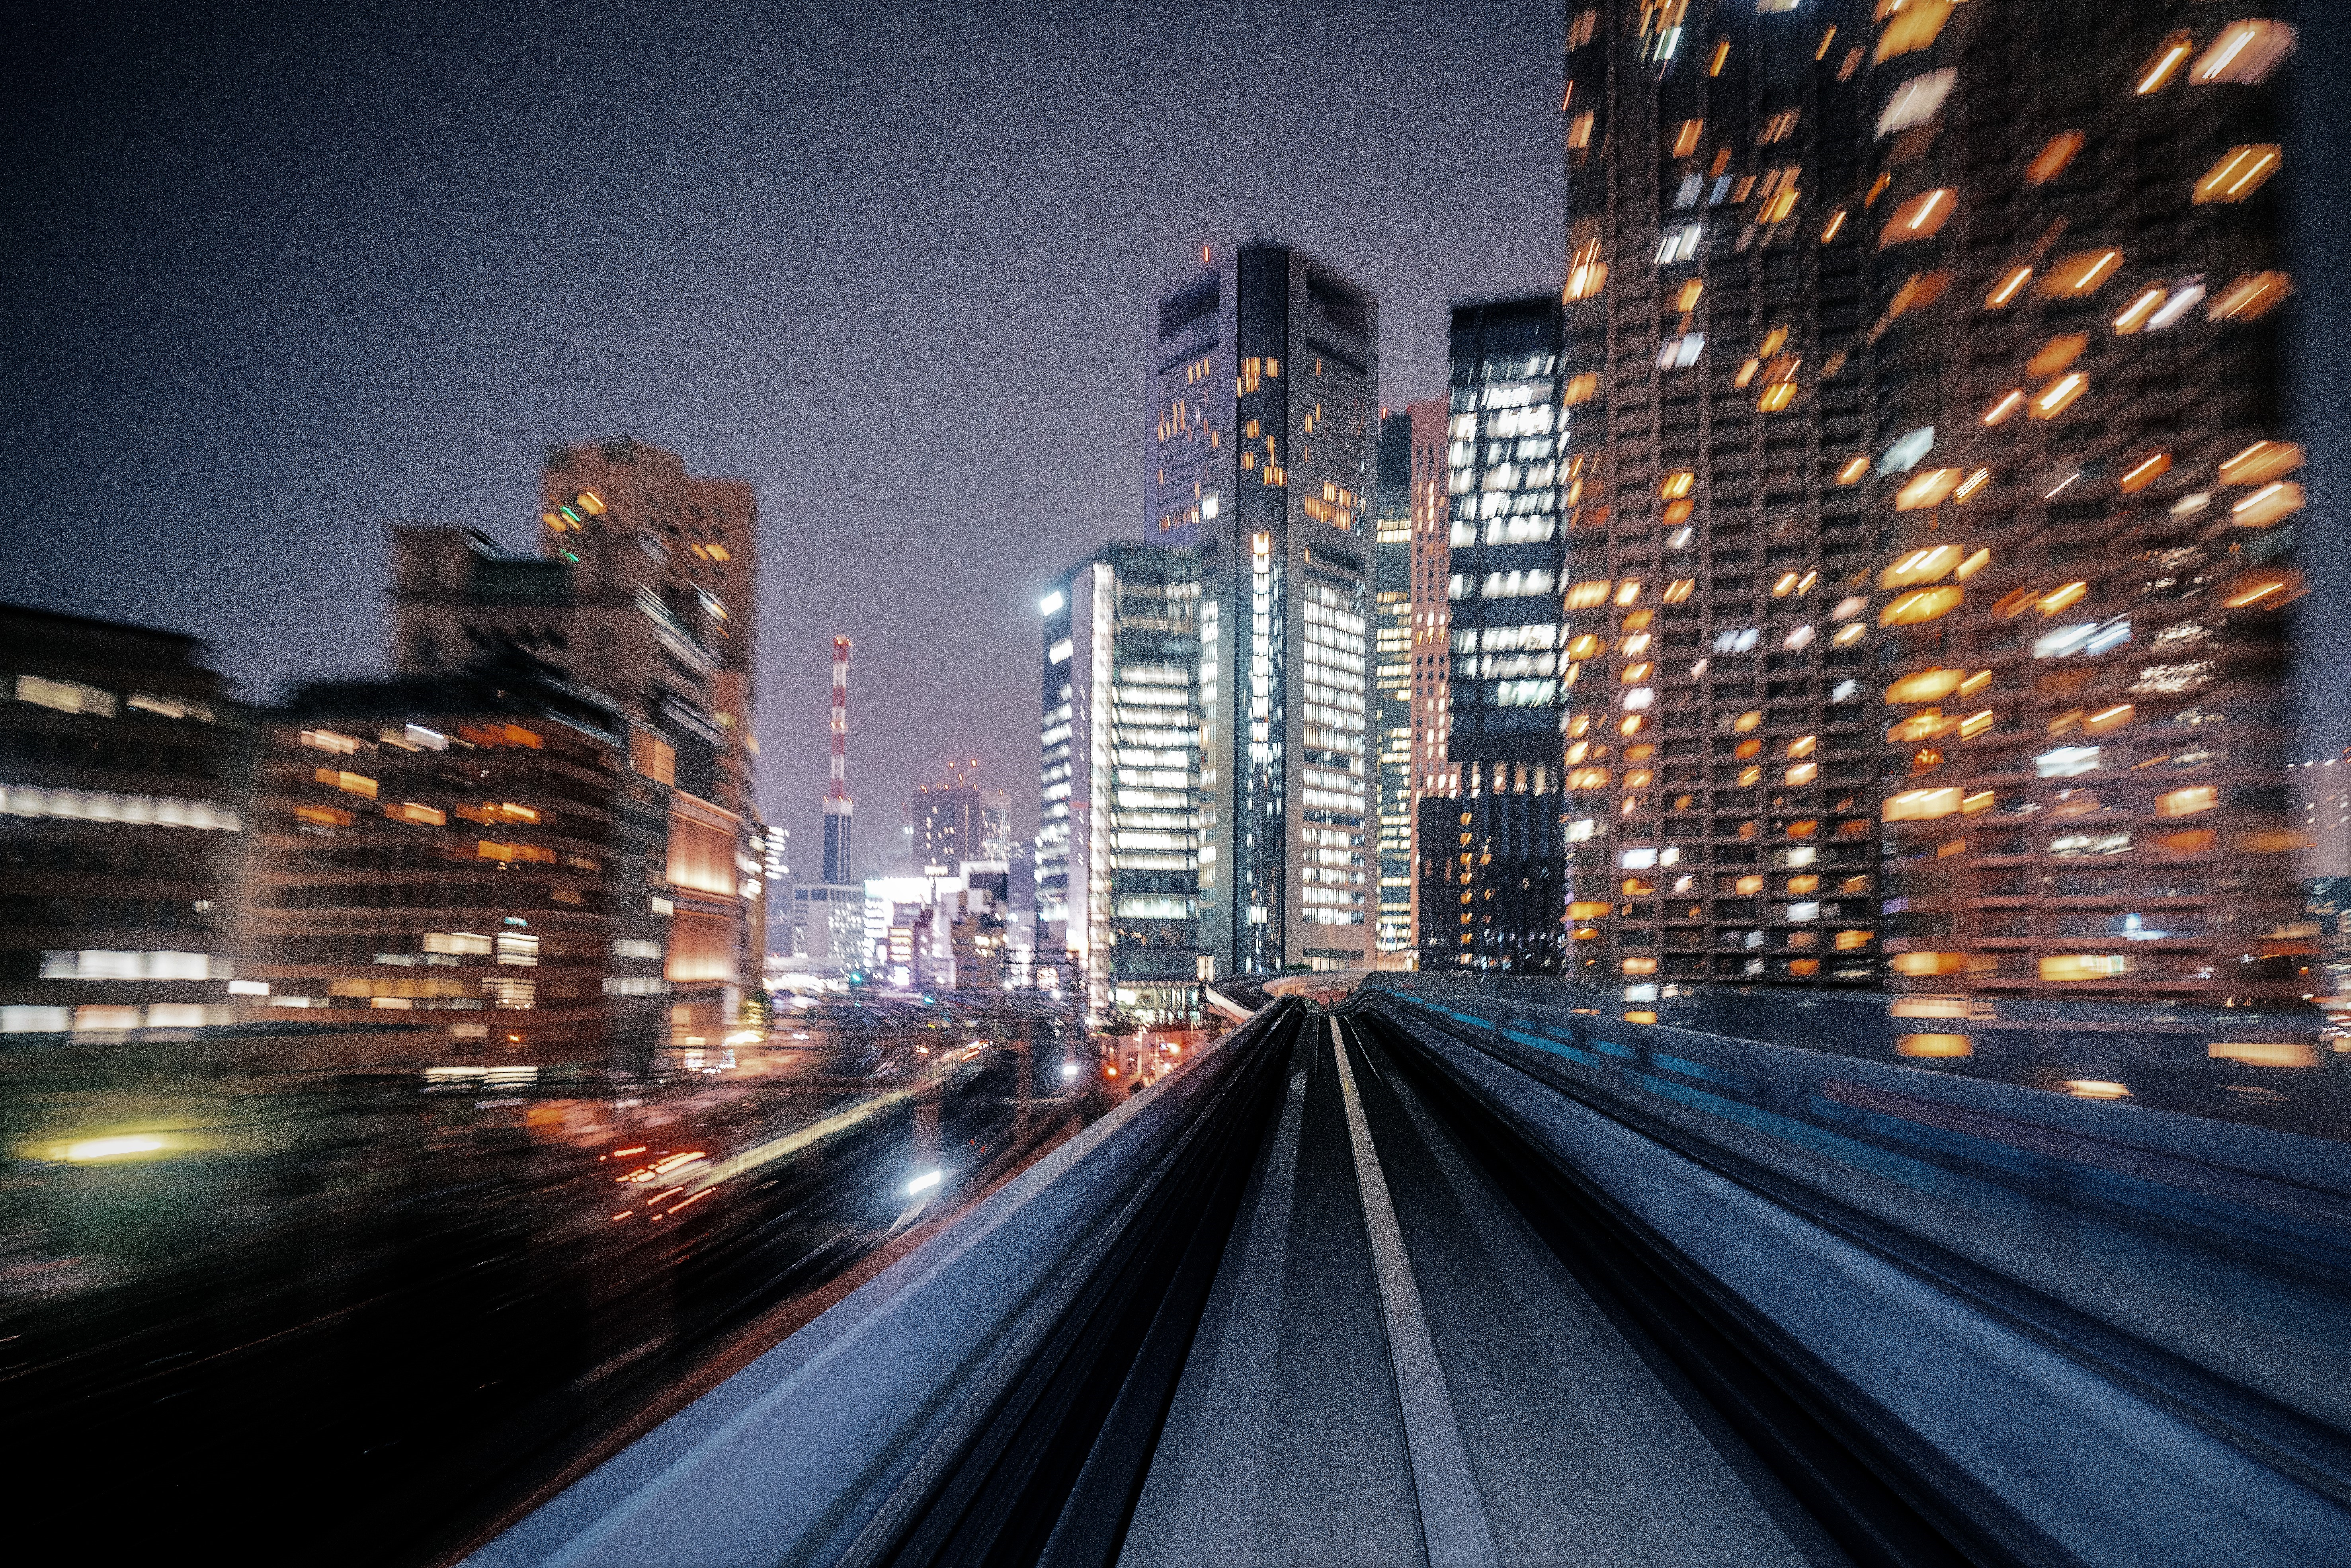 Motion blur of train moving to City